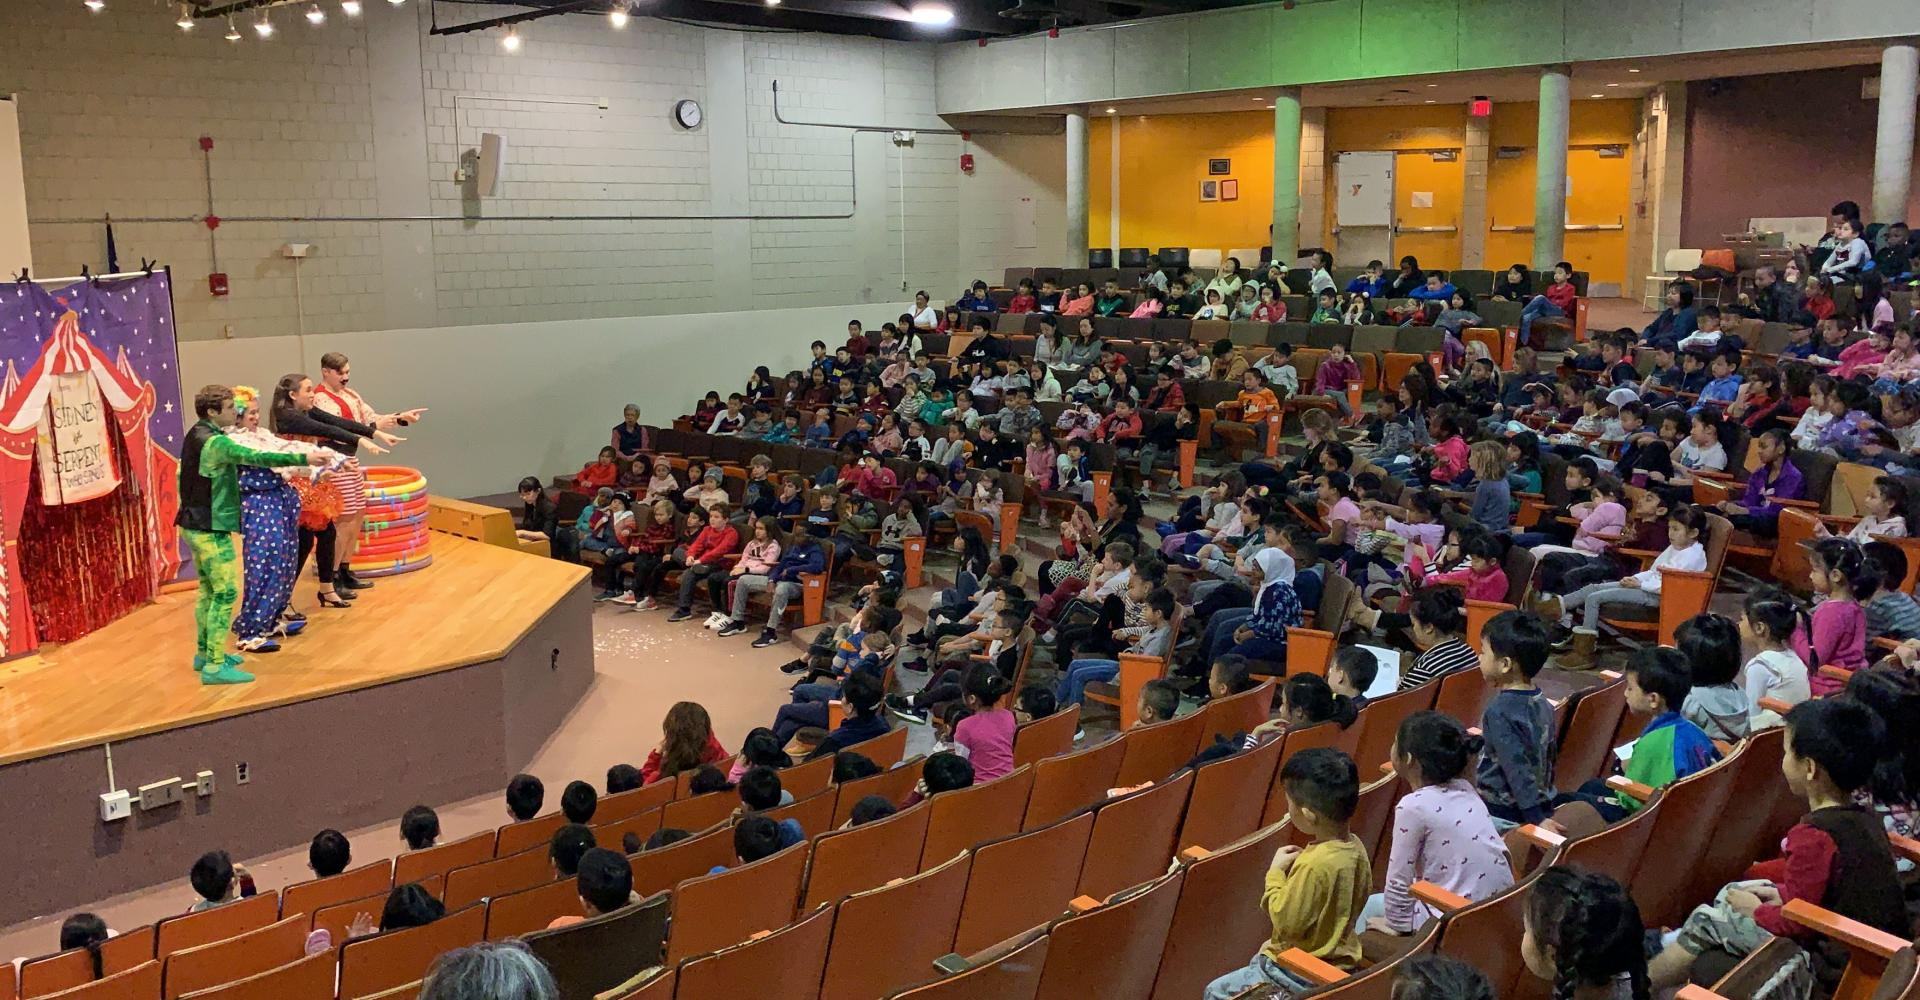 Touring Children's Opera cast performing for a full house.